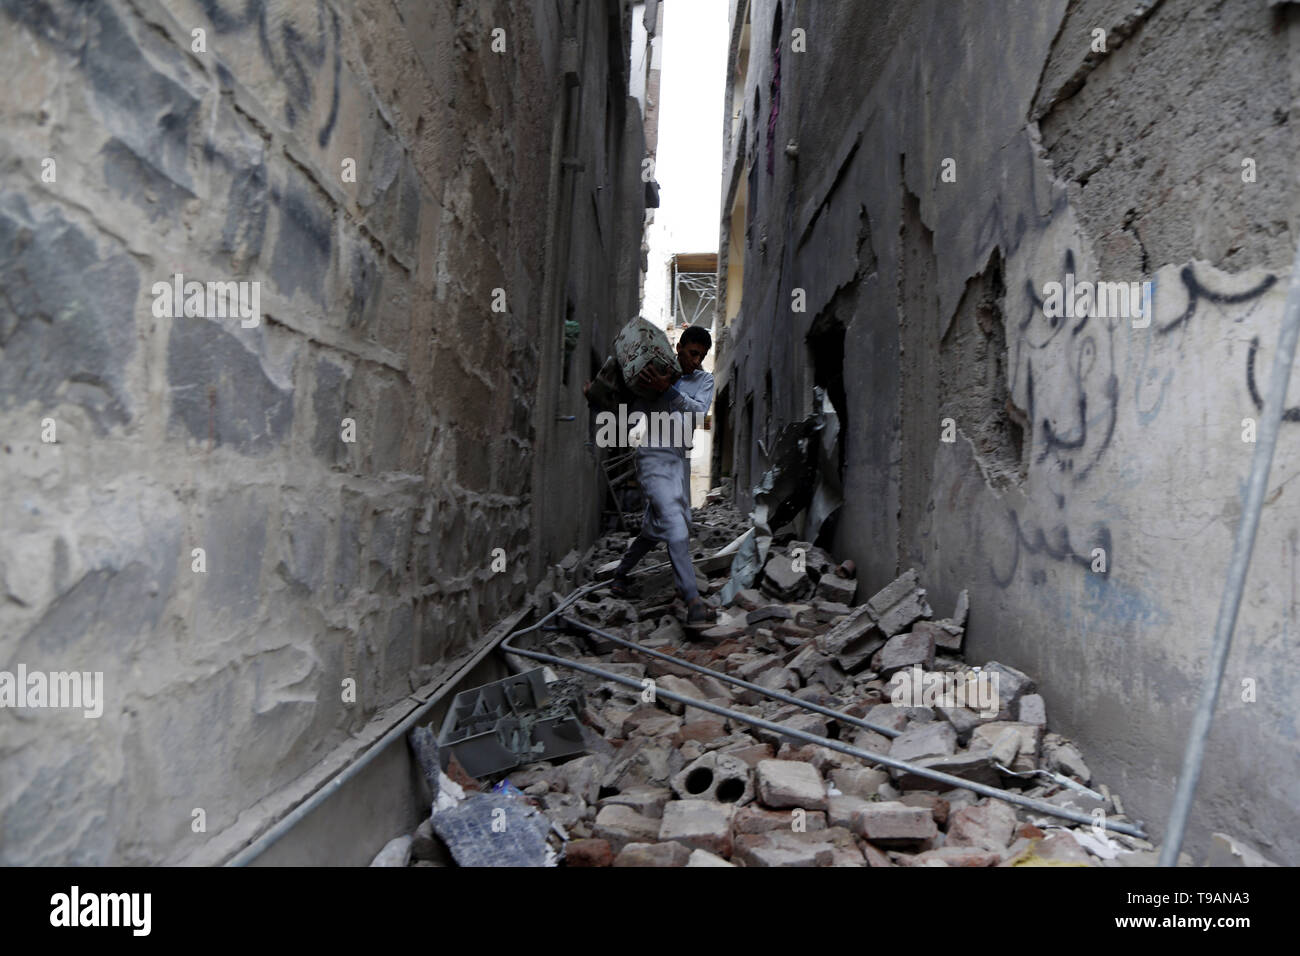 Sanaa, Yemen. 17th May, 2019. A man takes furniture out of a building after it was hit in airstrikes in Sanaa, Yemen, on May 17, 2019. The Saudi Arabia-led coalition launched airstrikes on Houthi rebels' targets in the Yemeni capital Sanaa on Thursday morning, causing civilian casualties and damages, authorities and local residents said. Credit: Mohammed Mohammed/Xinhua/Alamy Live News - Stock Image